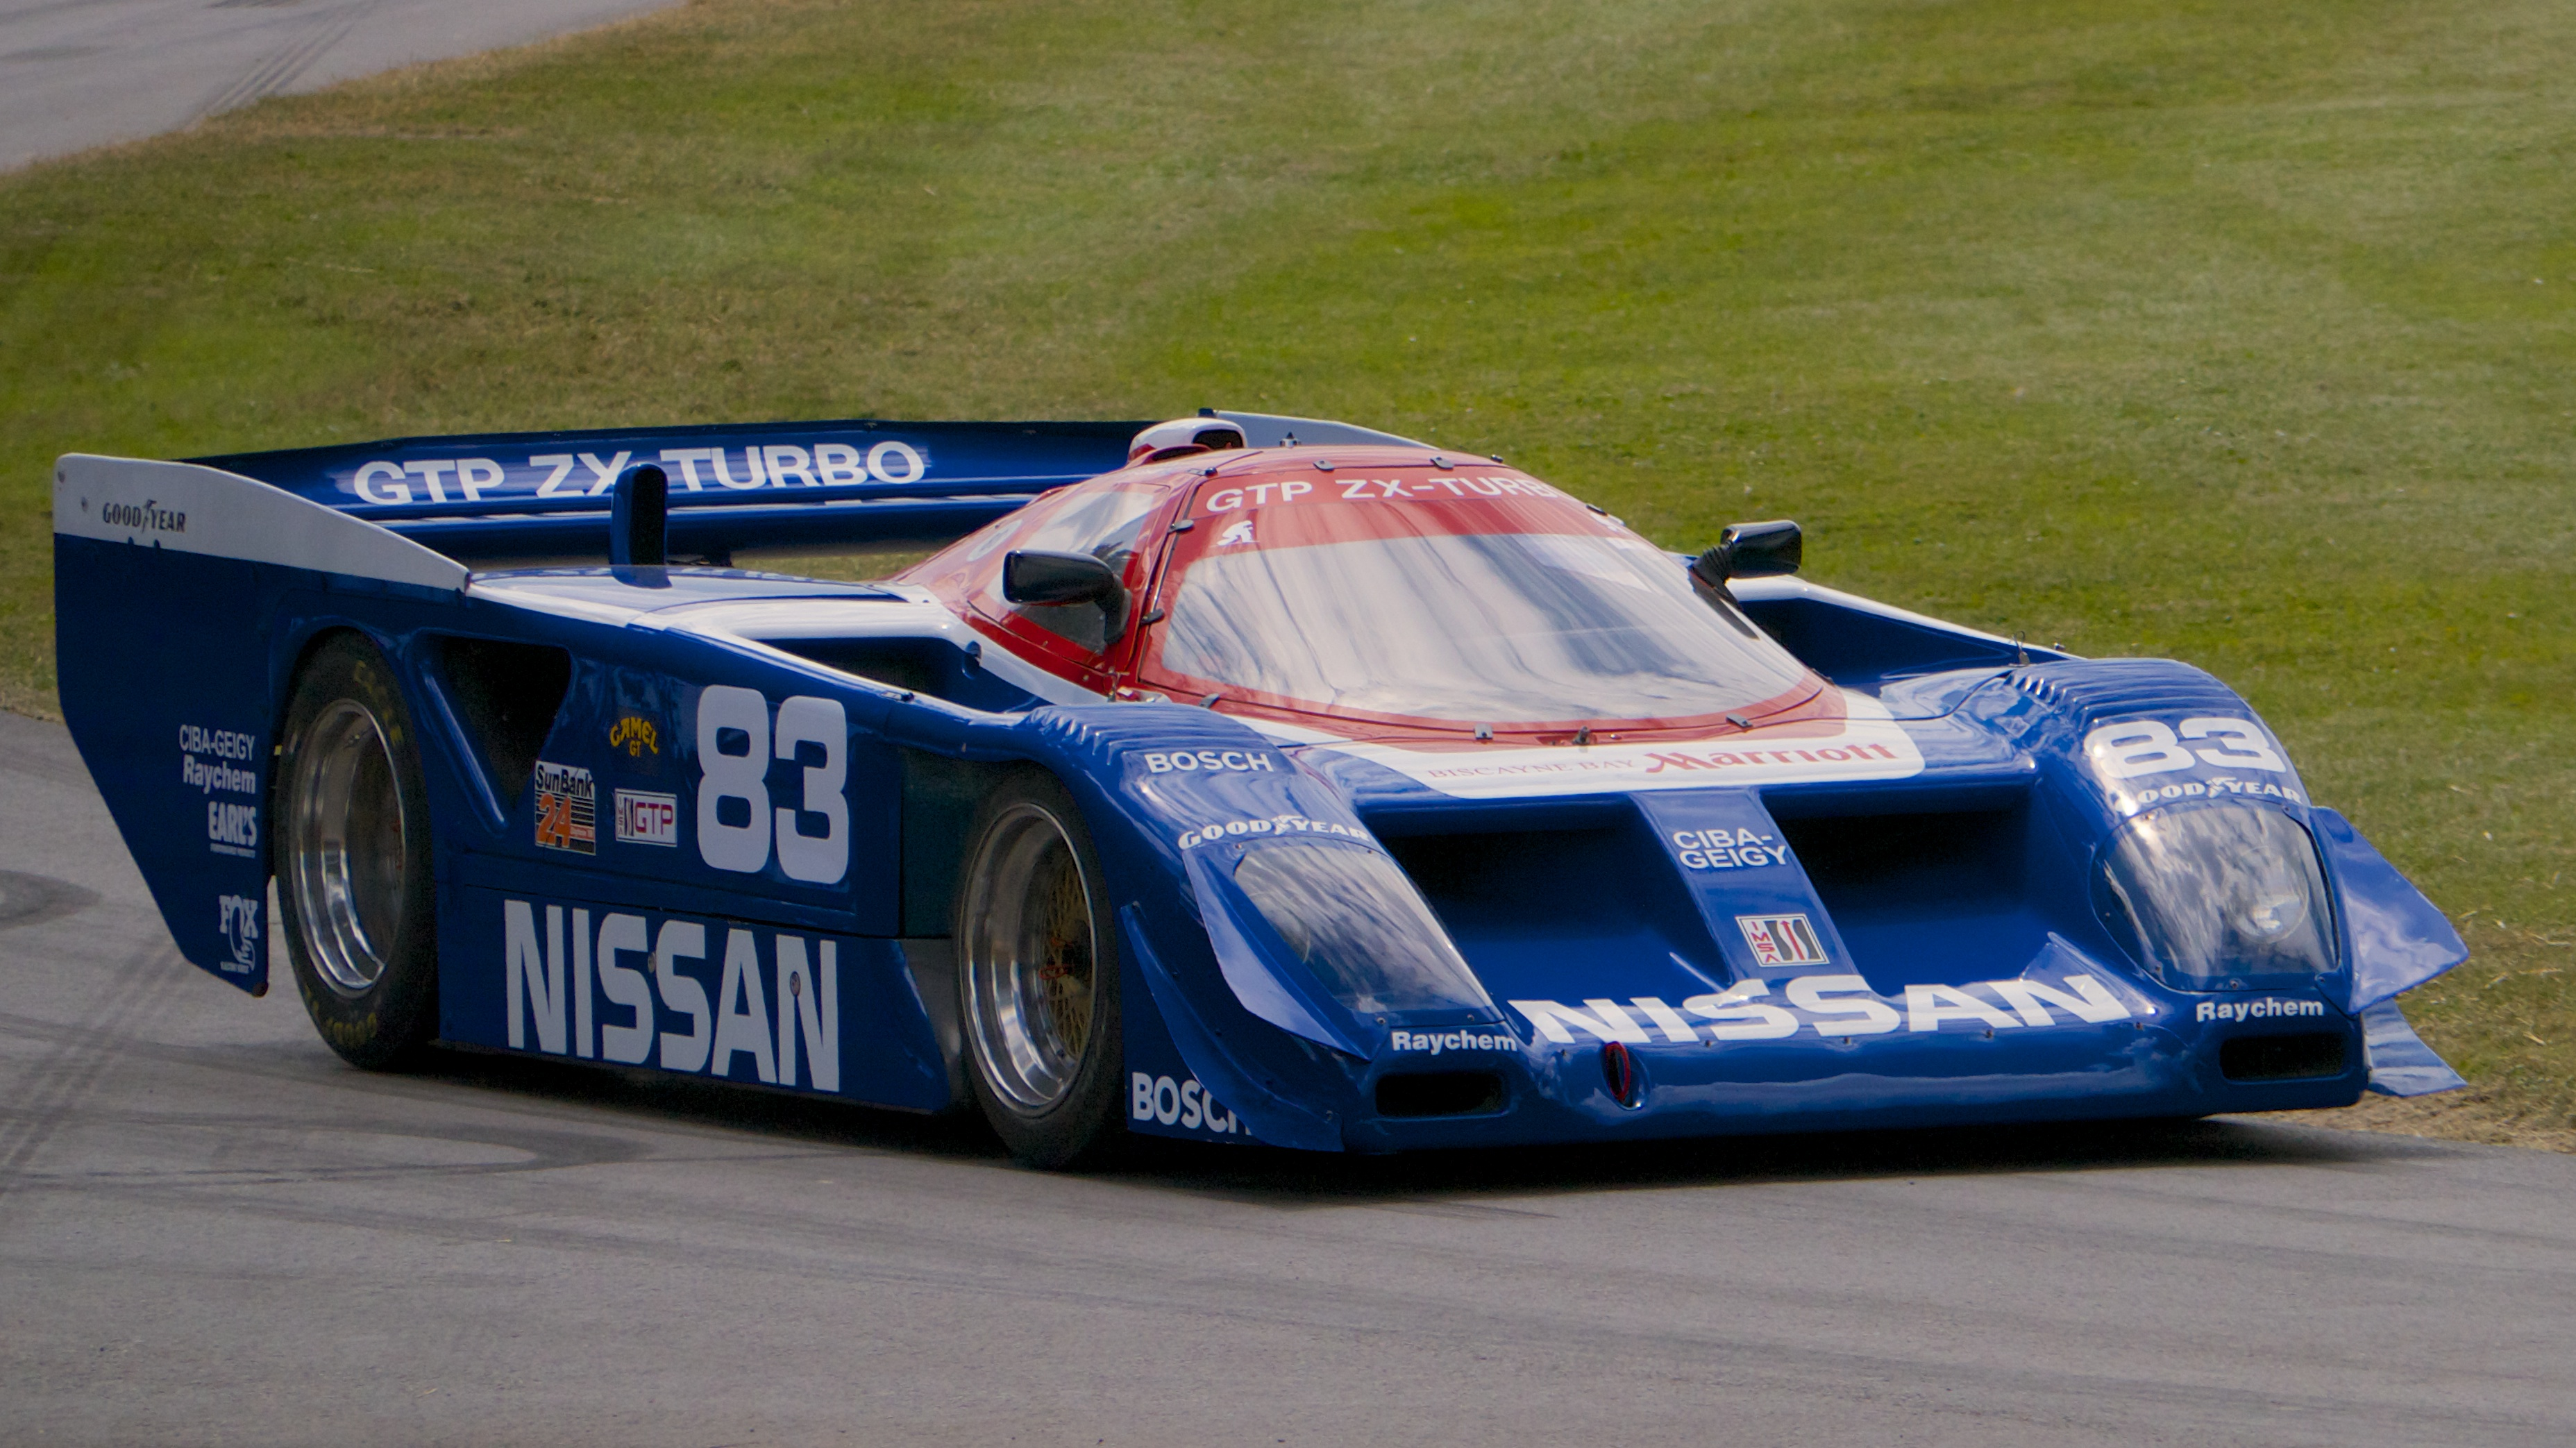 File Nissan Gtp Zx Turbo At Goodwood 2014 003 Jpg